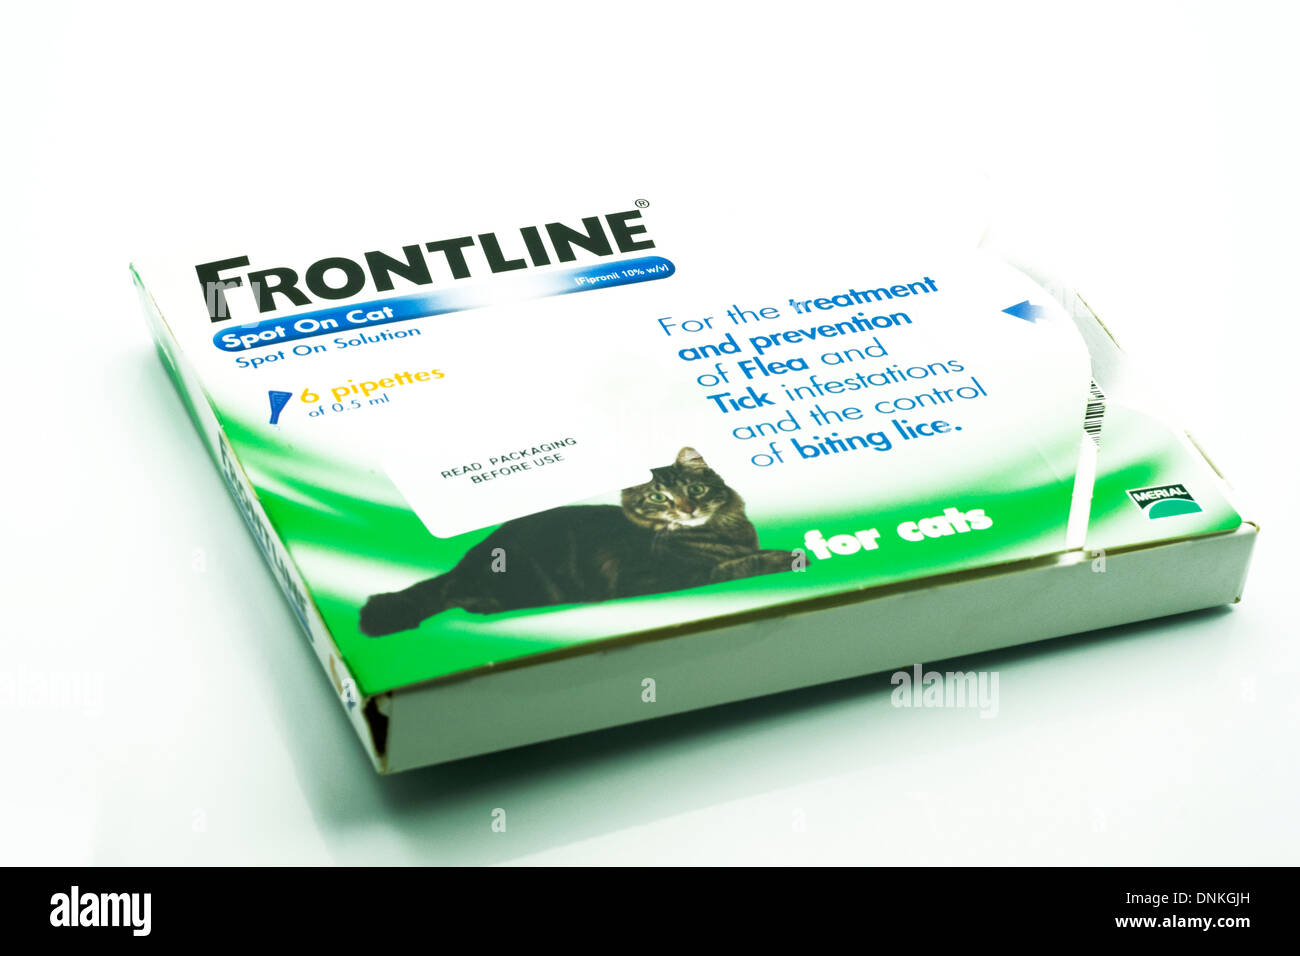 frontline flea treatment for cats in box cut out white background copy space - Stock Image